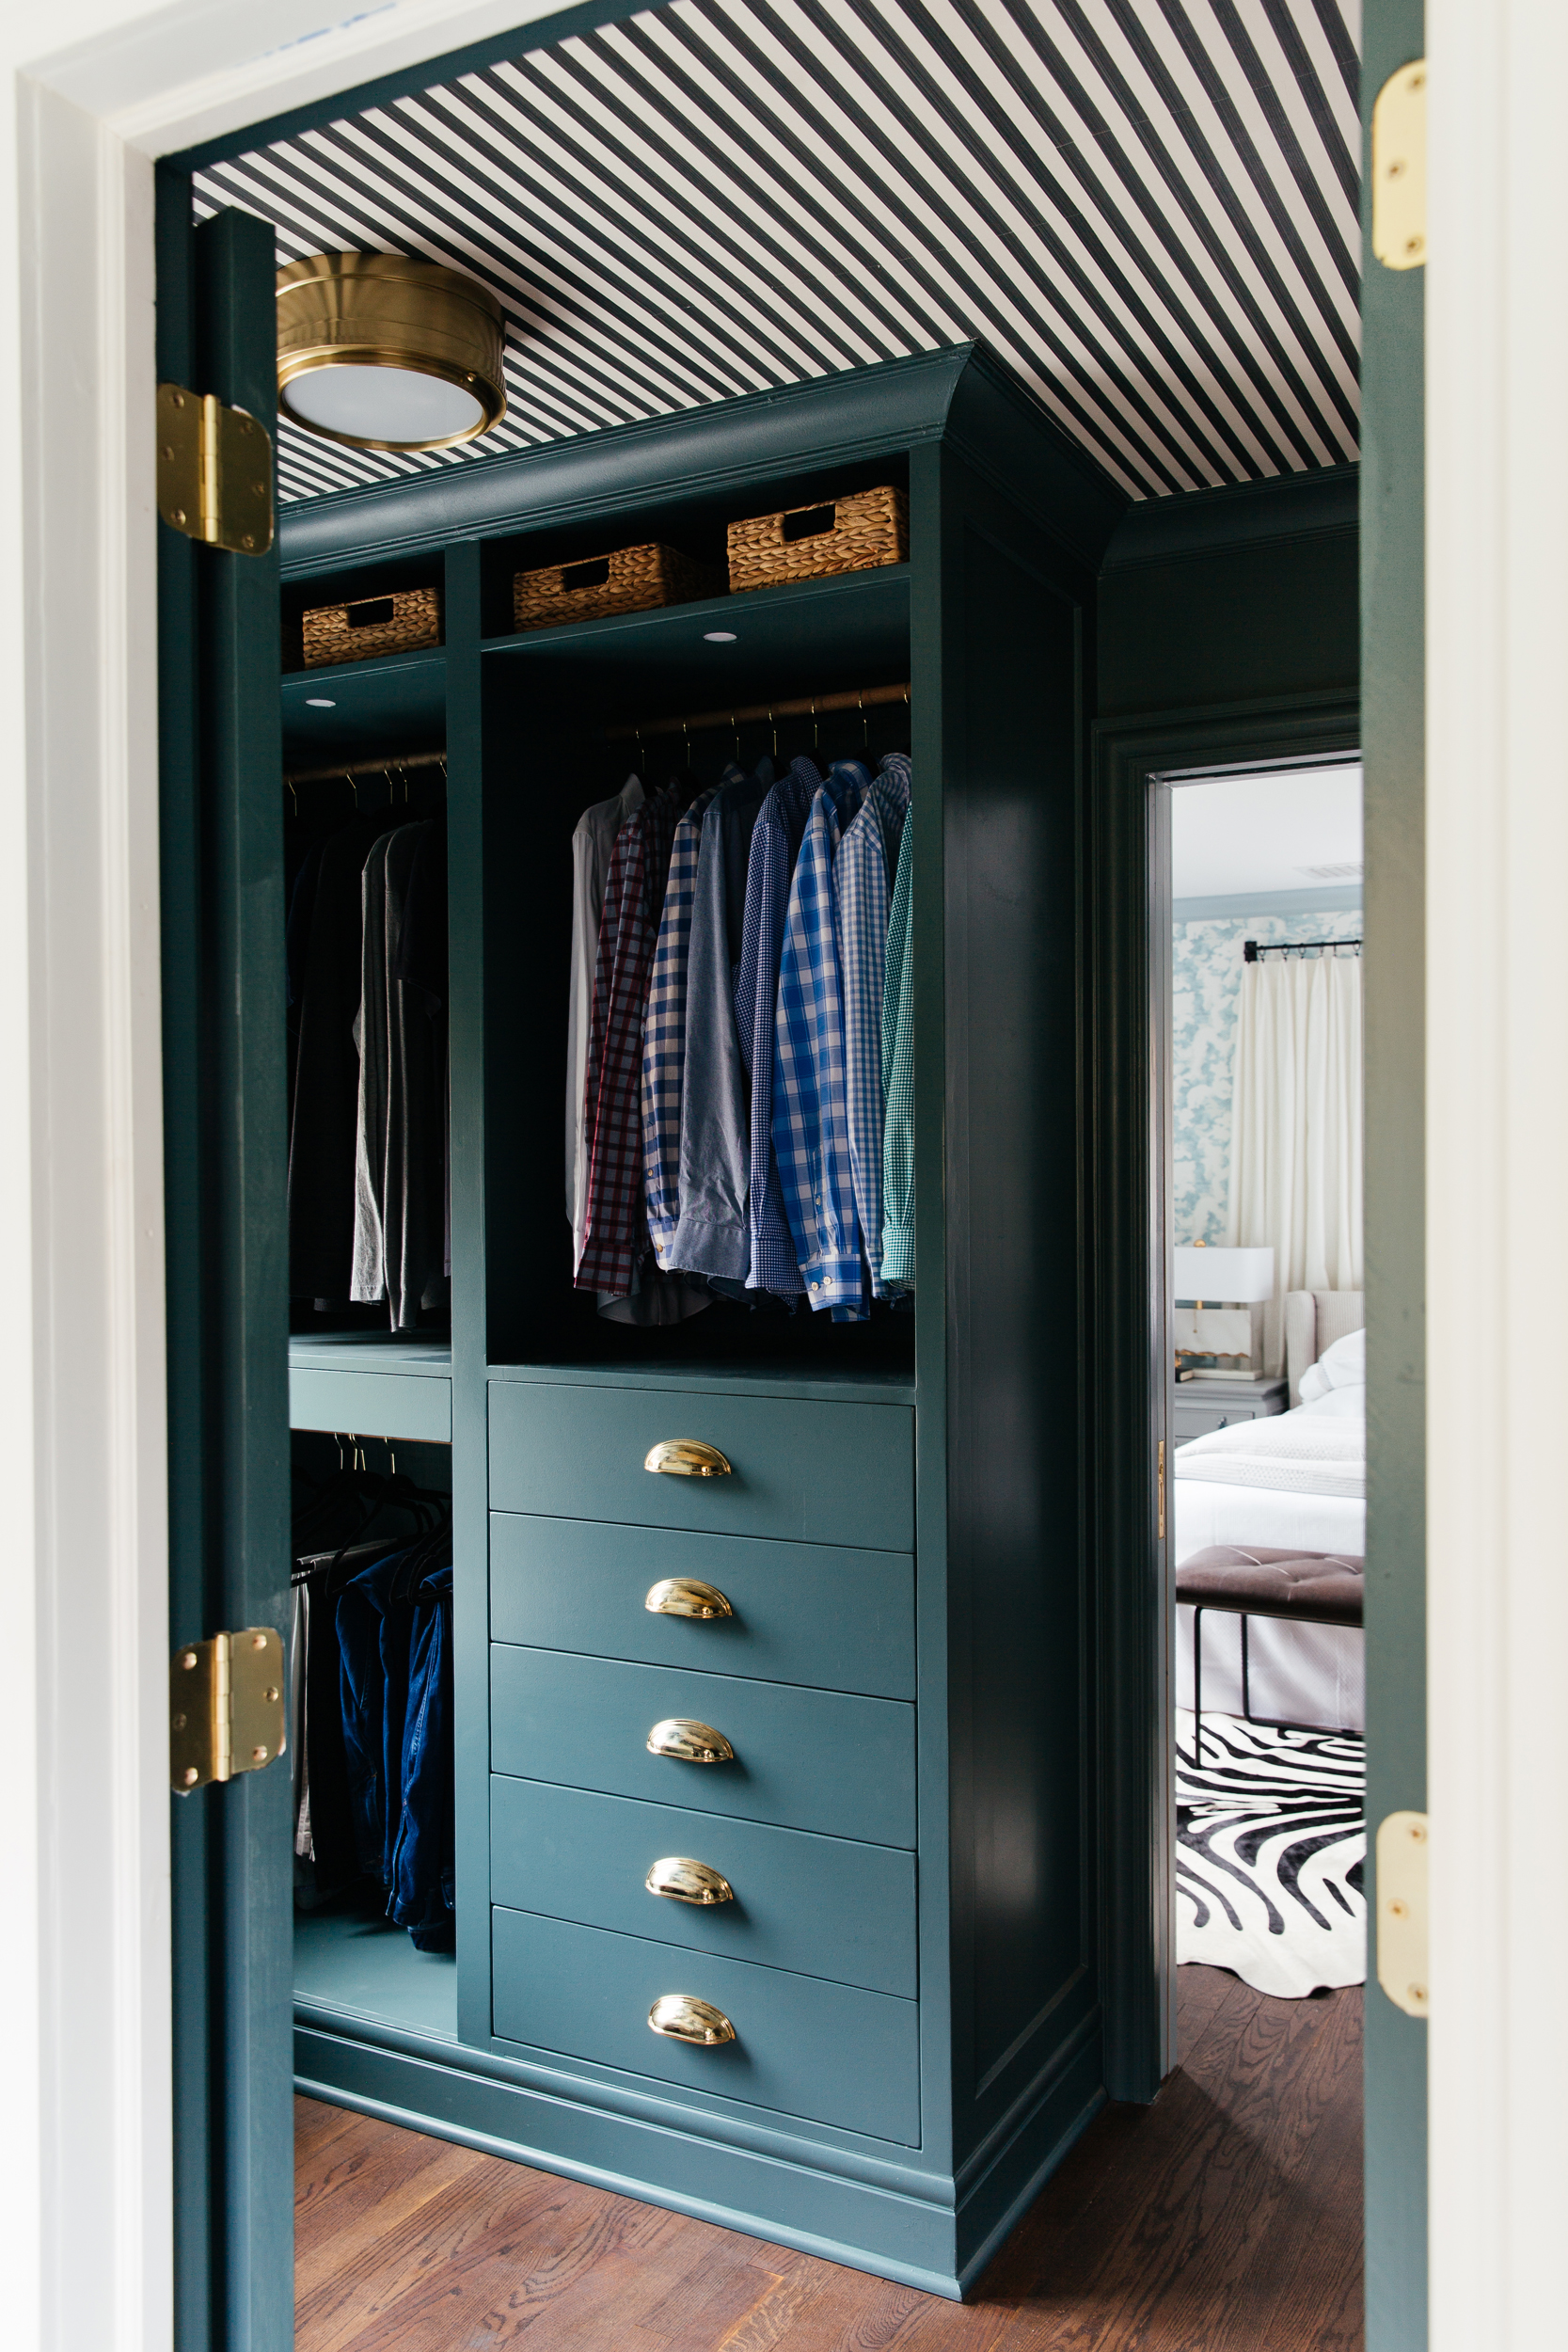 Everything You Need To Know About Buying And Installing An Ikea Closet System